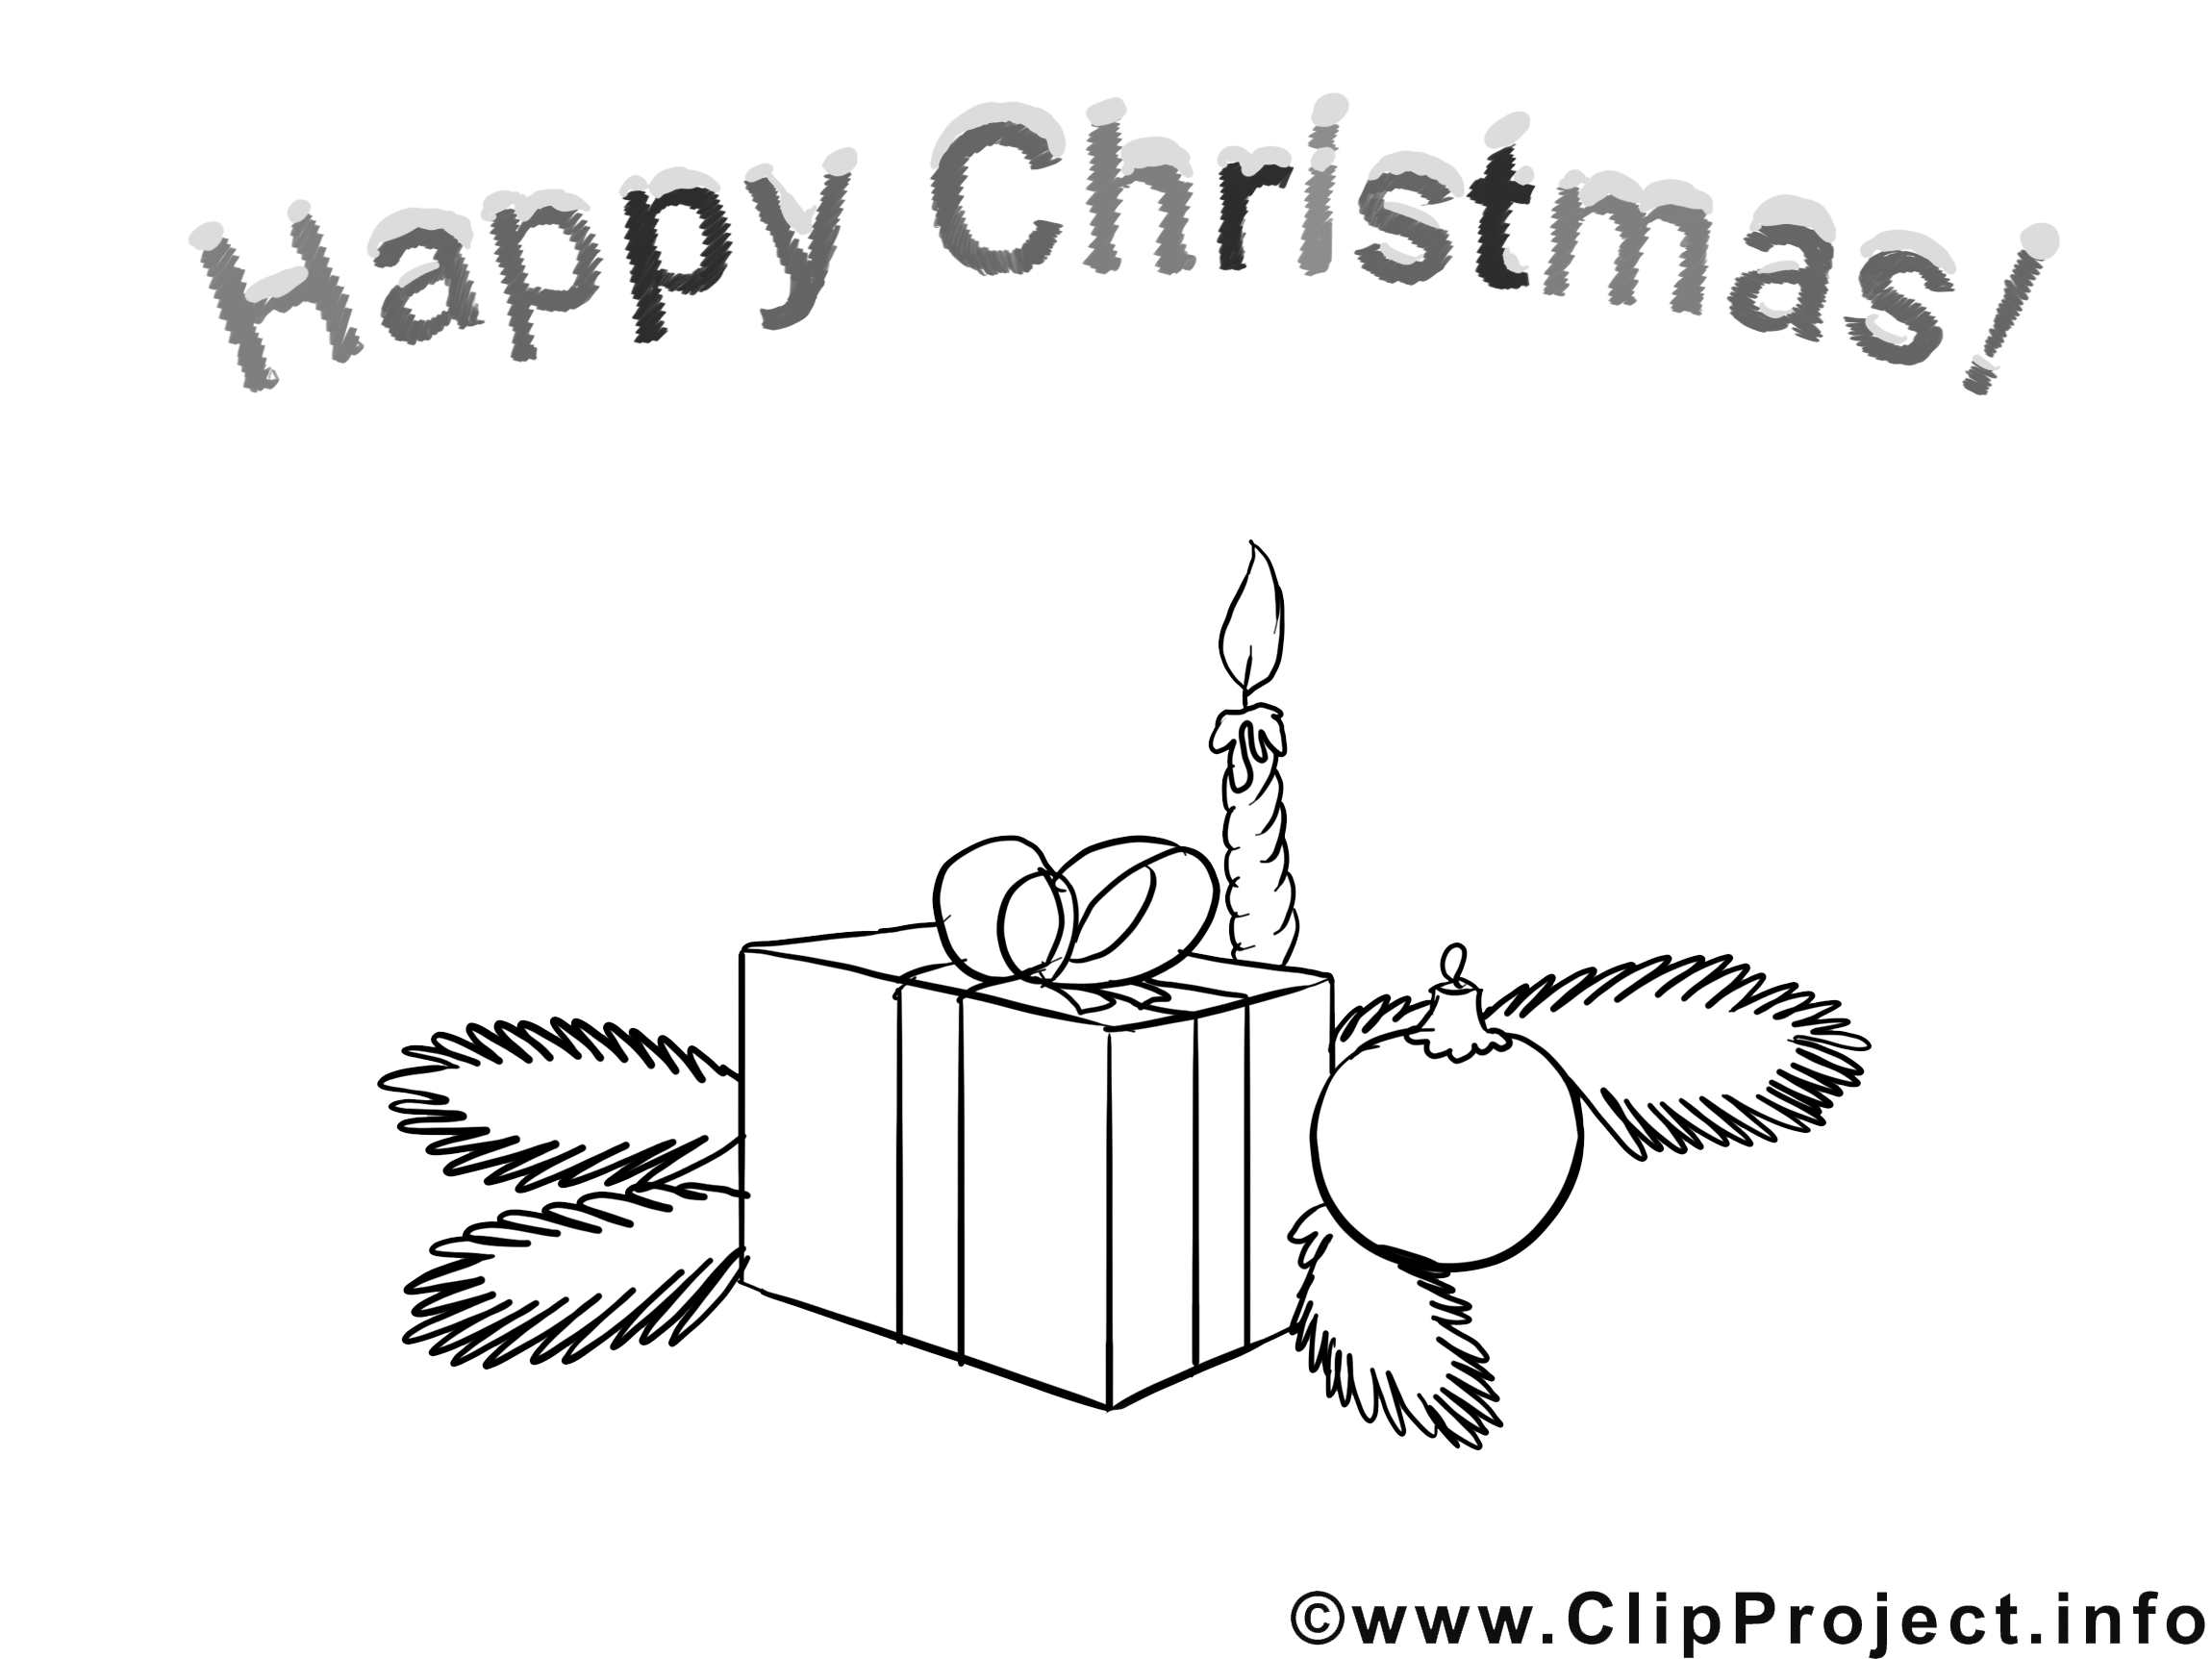 Bougie sapin clipart – Noël dessins à colorier